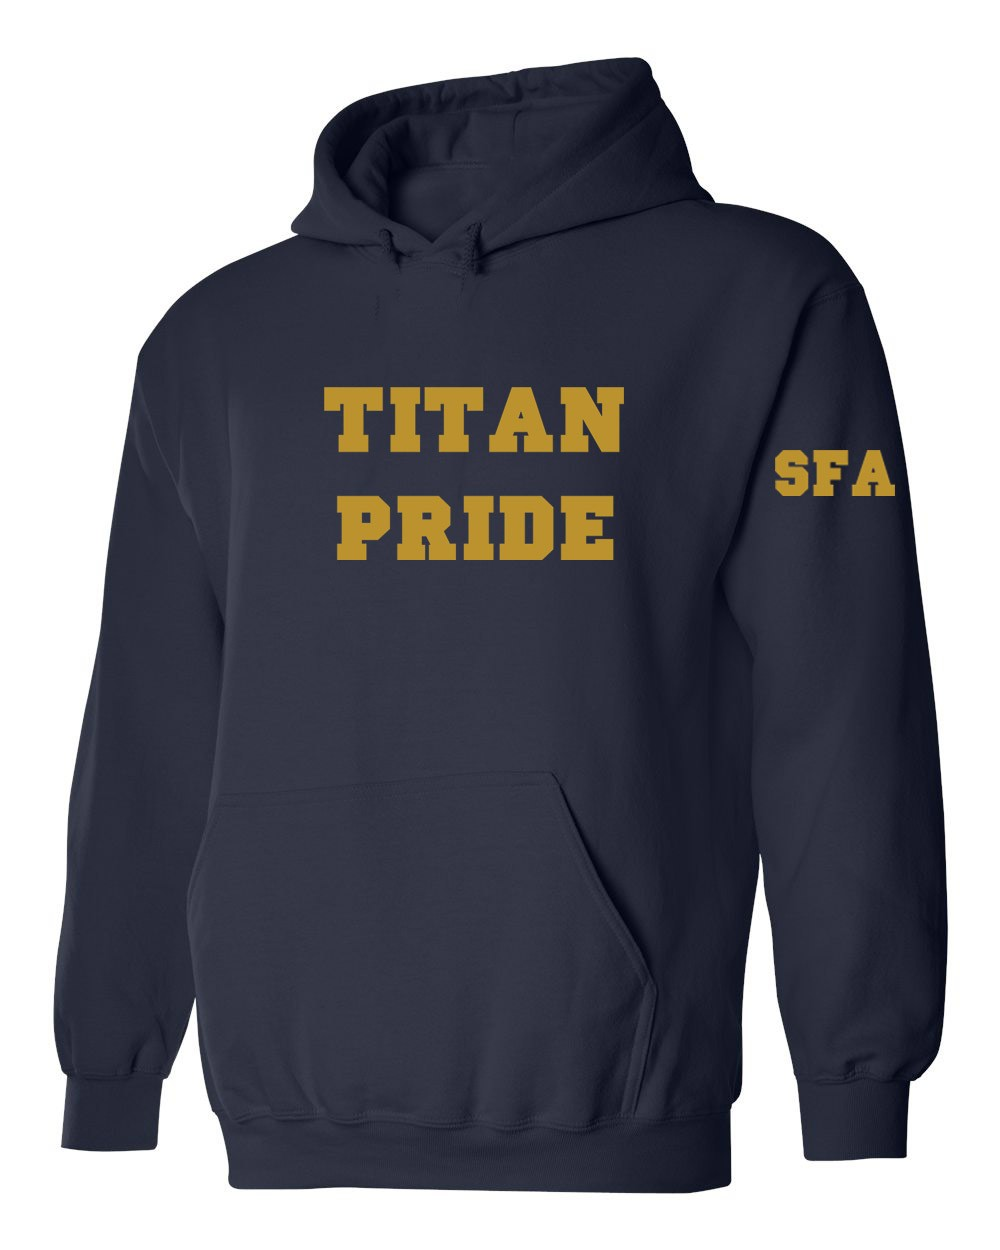 SFA TITANS Pullover Hoodie w/Logo & Custom Name - Please Allow 2-3 Weeks For Delivery